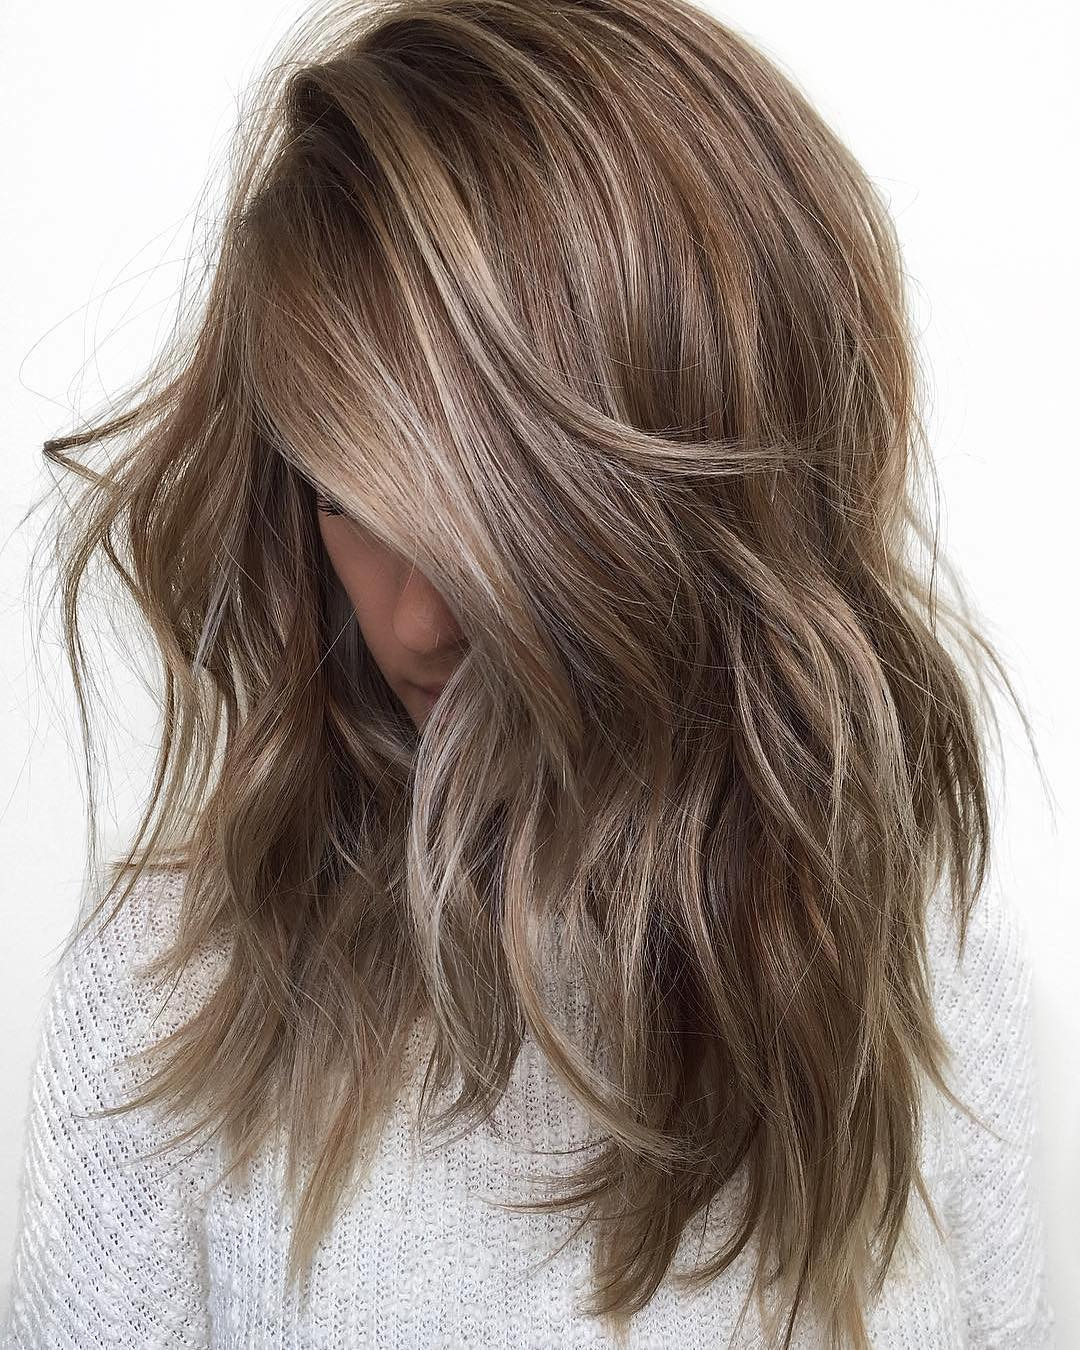 10 Medium Length Hair Color Ideas 2019 With Regard To Trendy Gray Hair Medium Hairstyles (View 1 of 20)